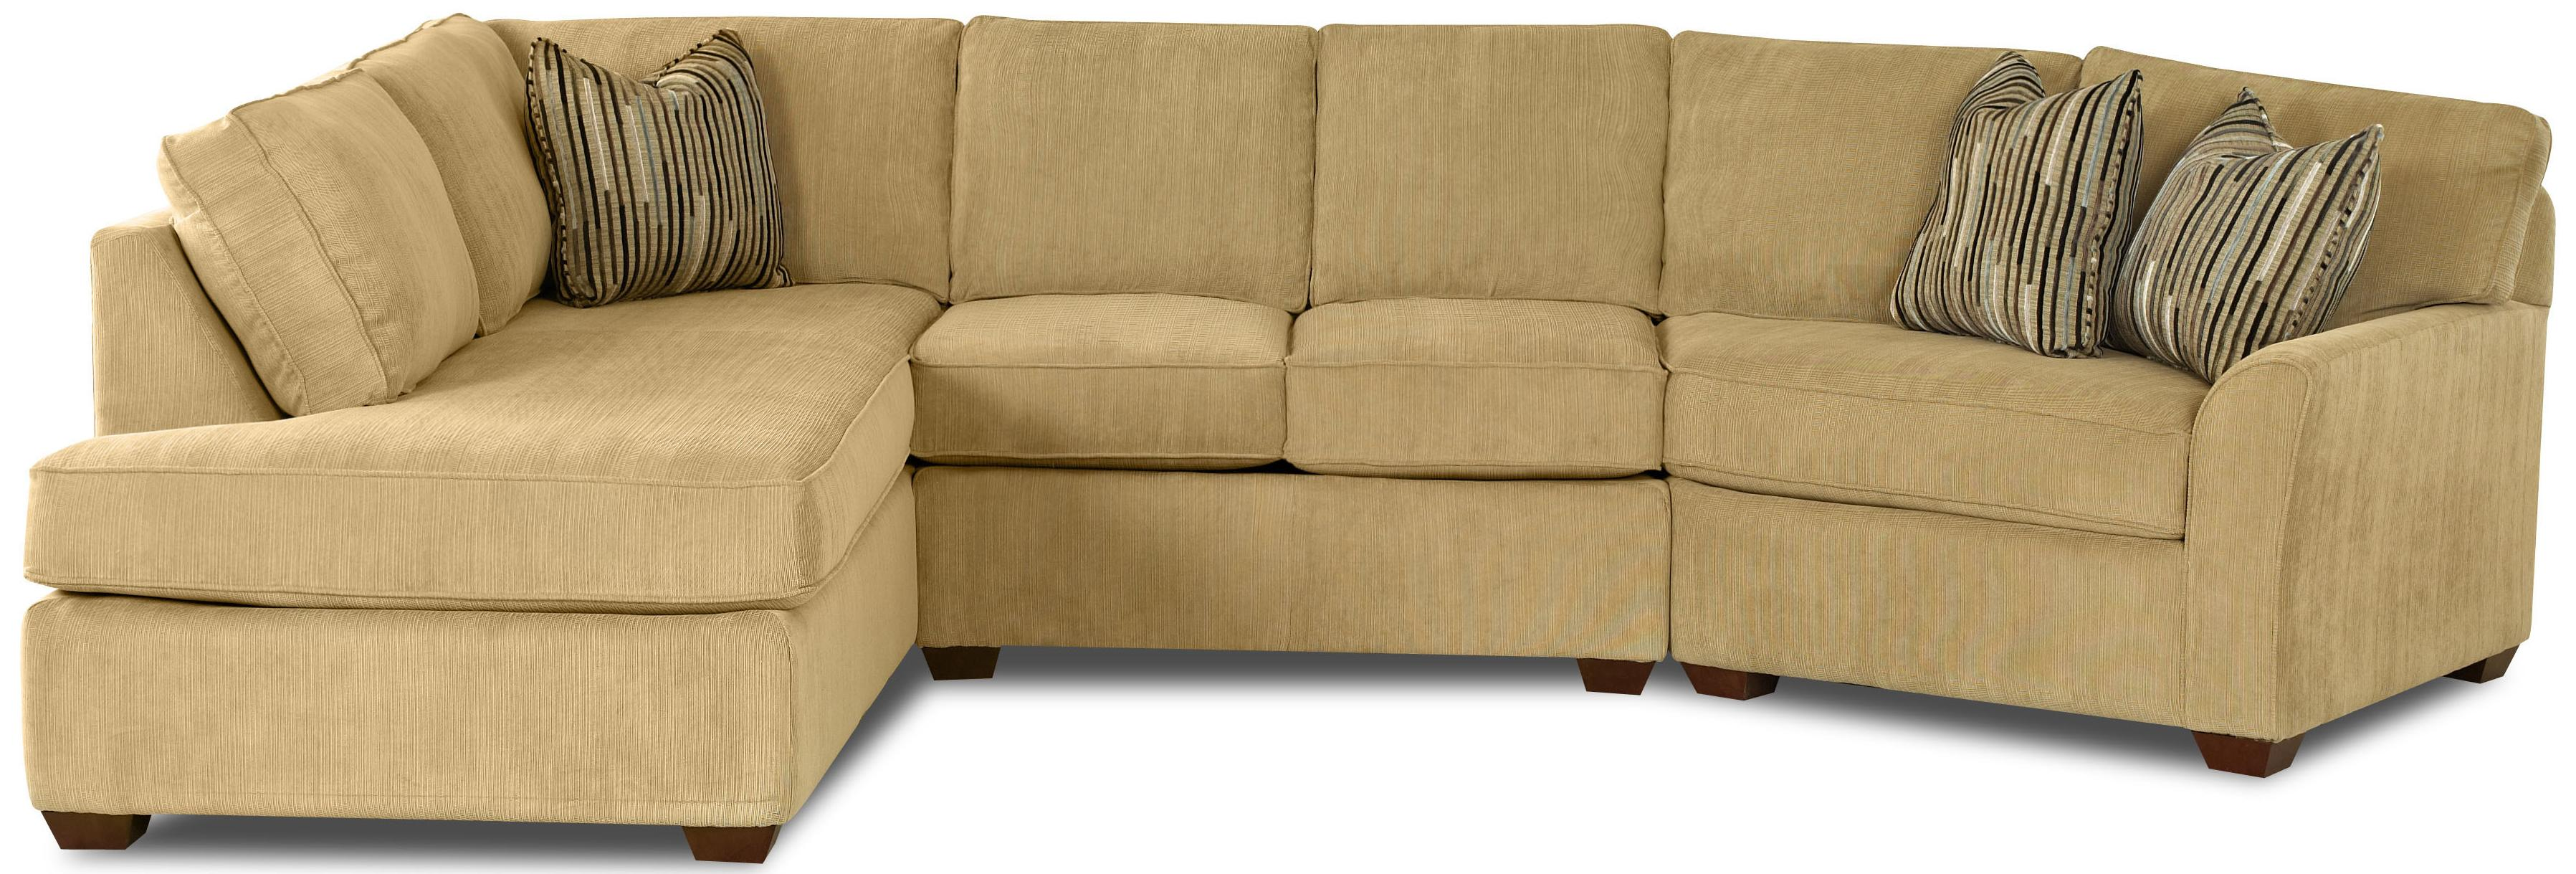 Klaussner Grady Sectional - Item Number: K55200L SCHS+AS+R BC